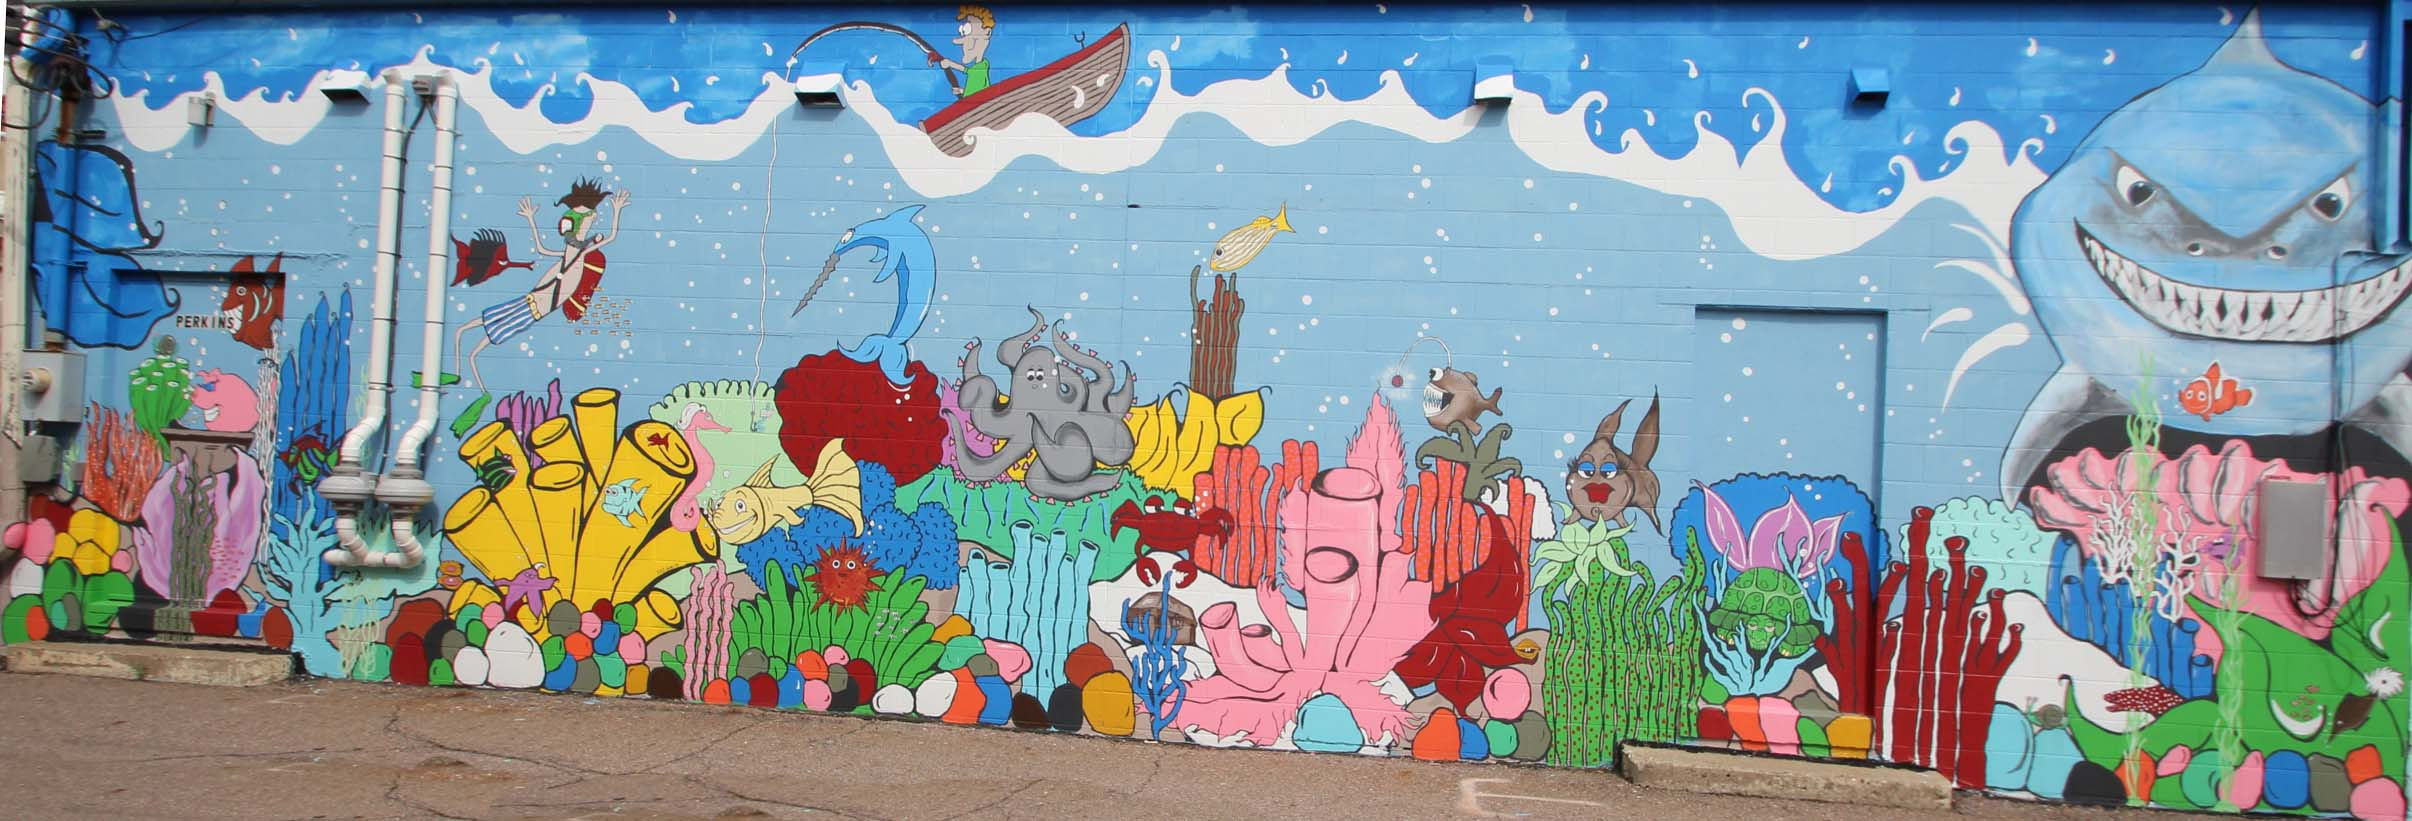 Mural of a cartoonish underwater scene, featuring fish, a scuba diver, coral, a shark, and octopus, and a guy in a boat on top with a fishing pole